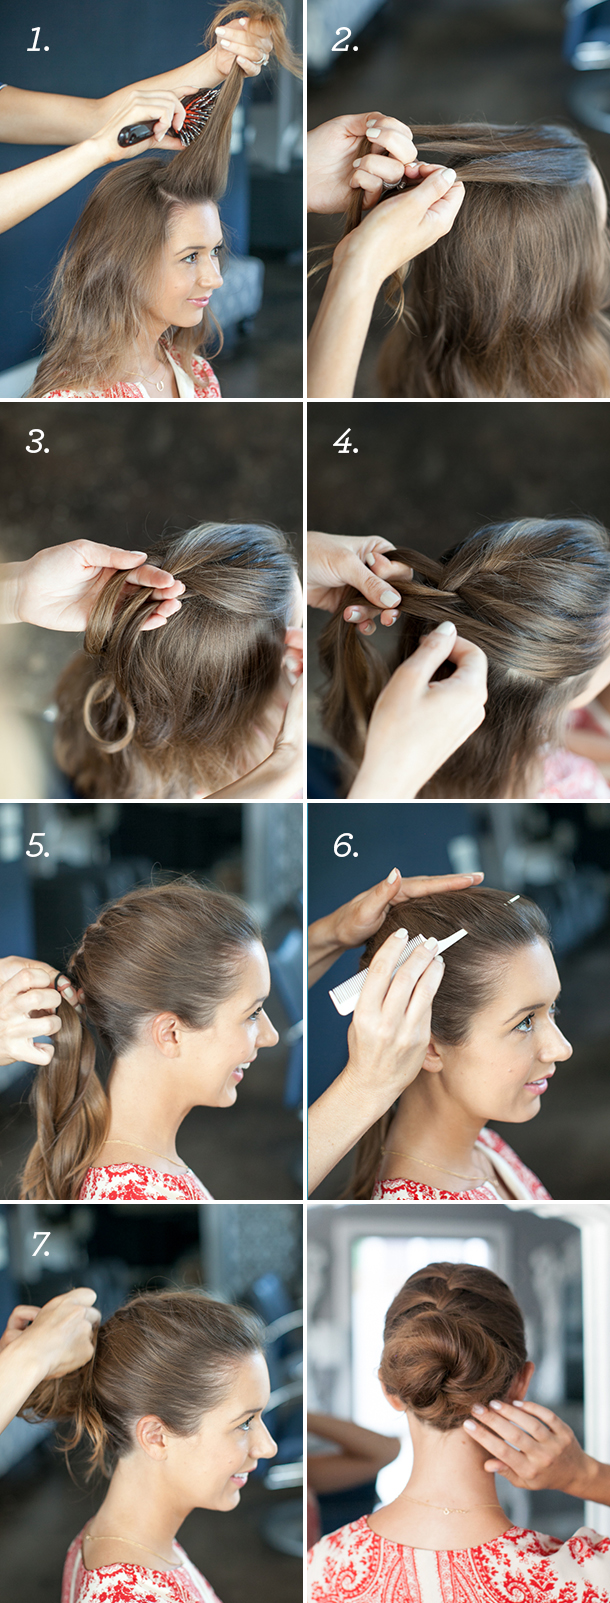 Pretty simple french braid bun camille styles french braid bun tutorial camille styles newpostlabelinstructions solutioingenieria